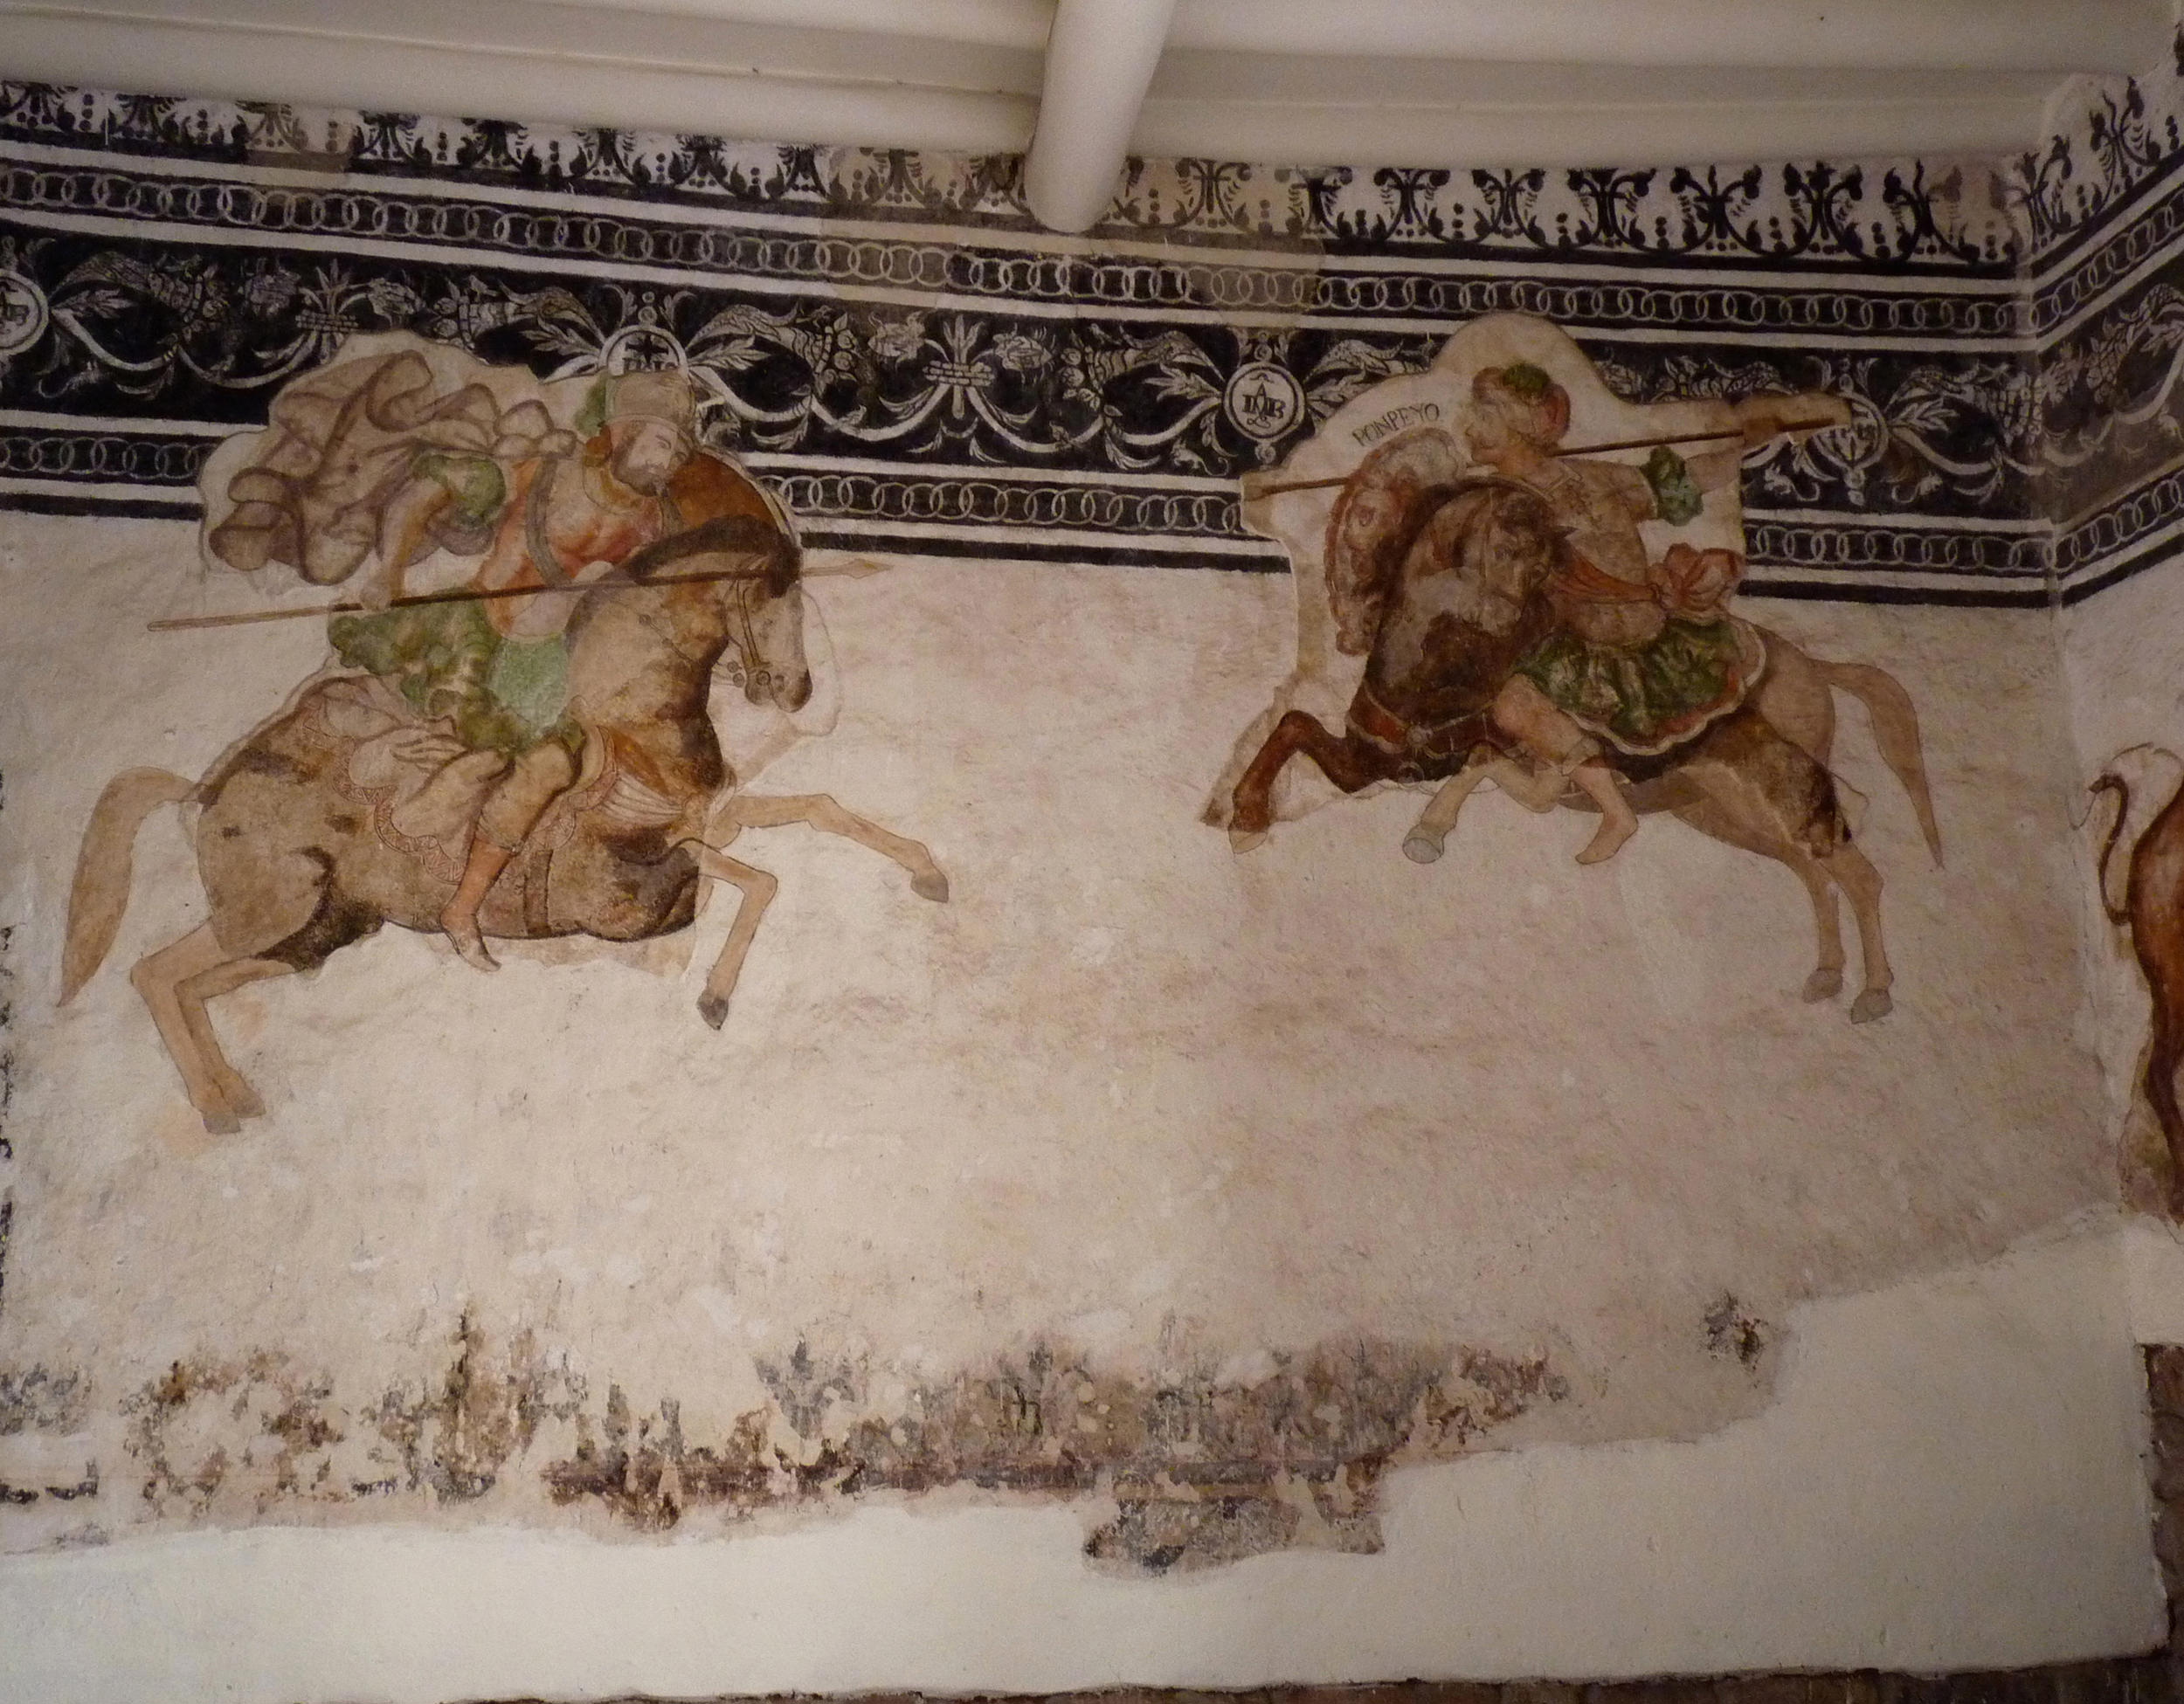 Fig. 3 Mural of what appears to be the Battle of Pharsalus, with Julius Caesar (left) defeating Pompey (right). Restorers have shown the black and white mural upon which this scene was painted. Casa de Antonio de Zea, Cuzco, 17th century. Photo by author.